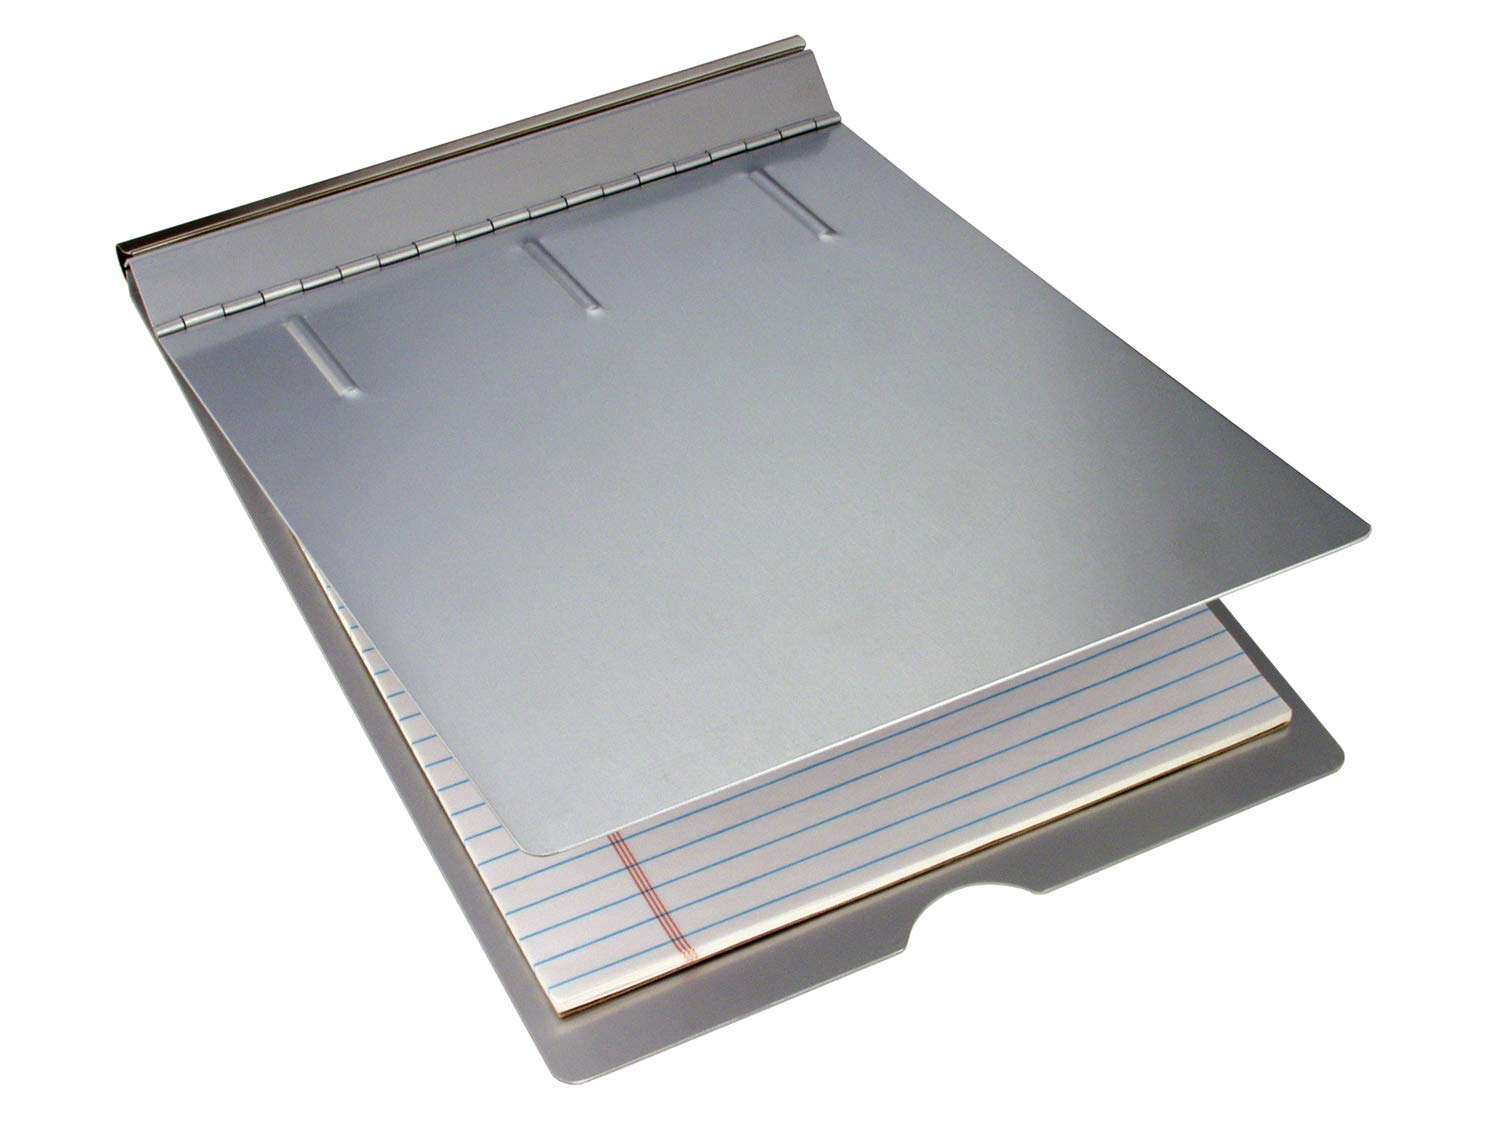 Saunders Recycled Aluminum Springback Sheet Holder - Durable Document Holder with Privacy Cover. Stationery Supplies by Saunders